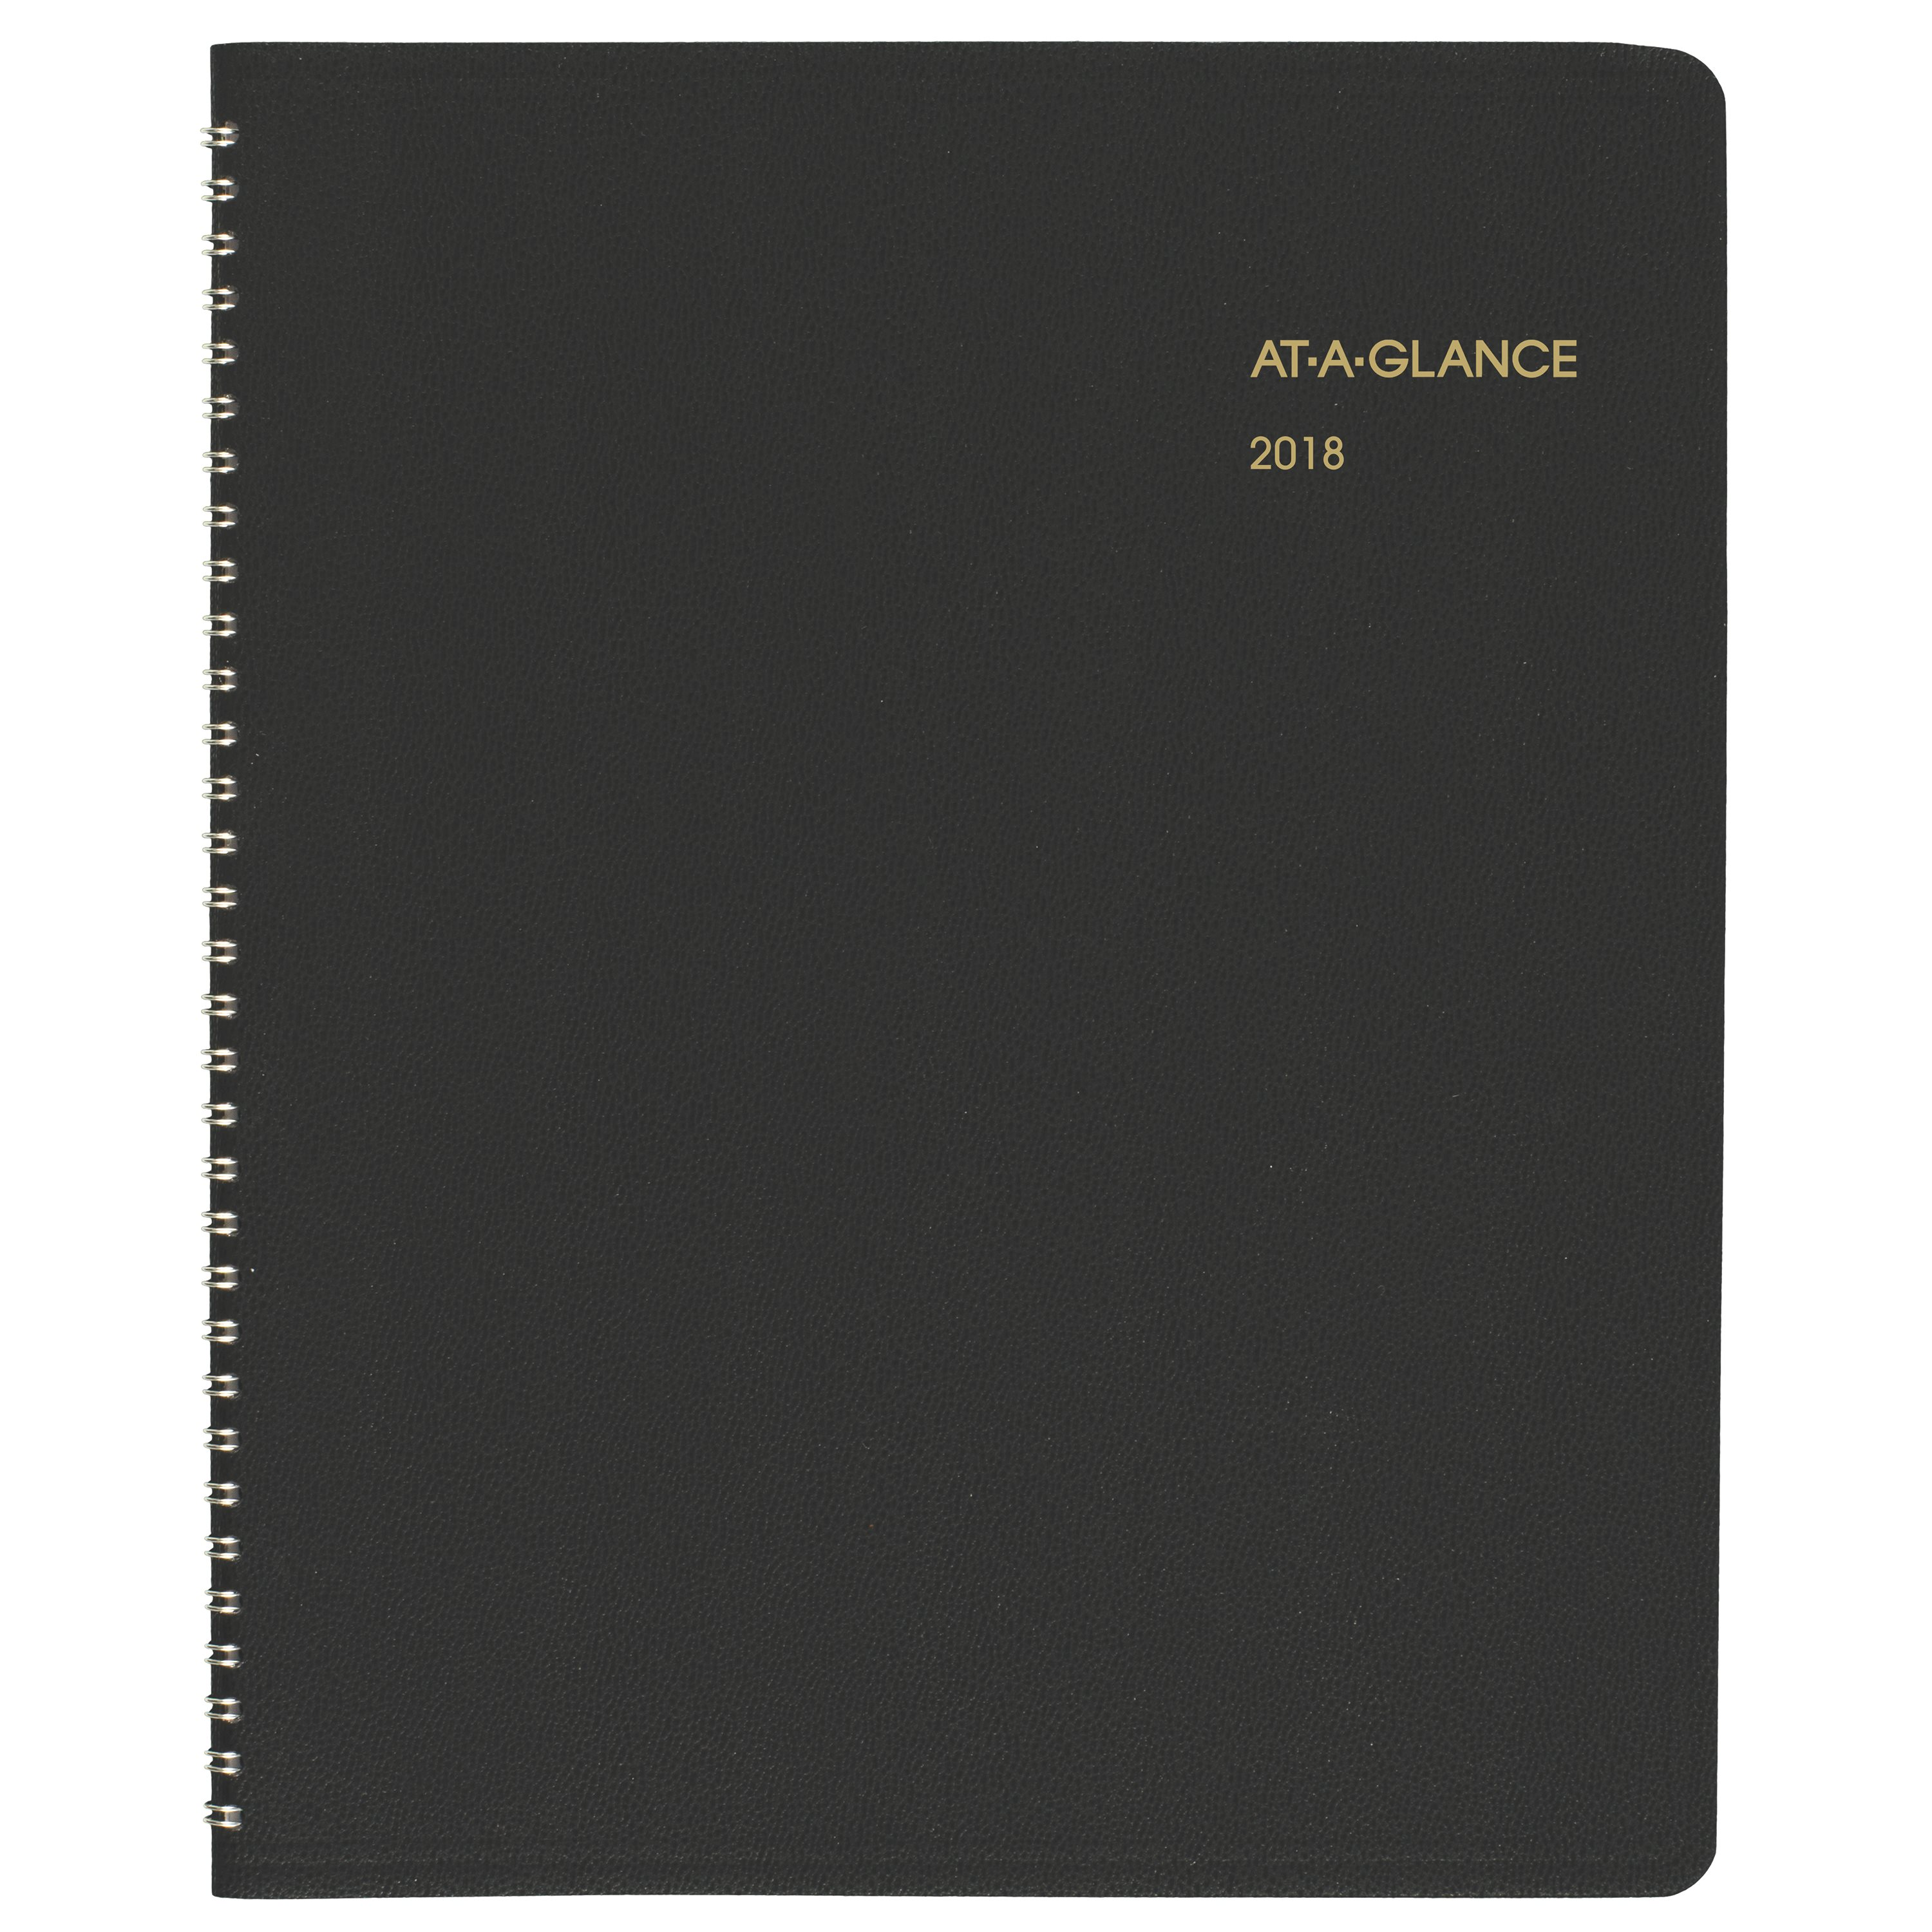 """2018 AT-A-GLANCE Monthly Planner, 15 Months, January Start, 8 7 8"""" x 11\ by ACCO BRANDS"""